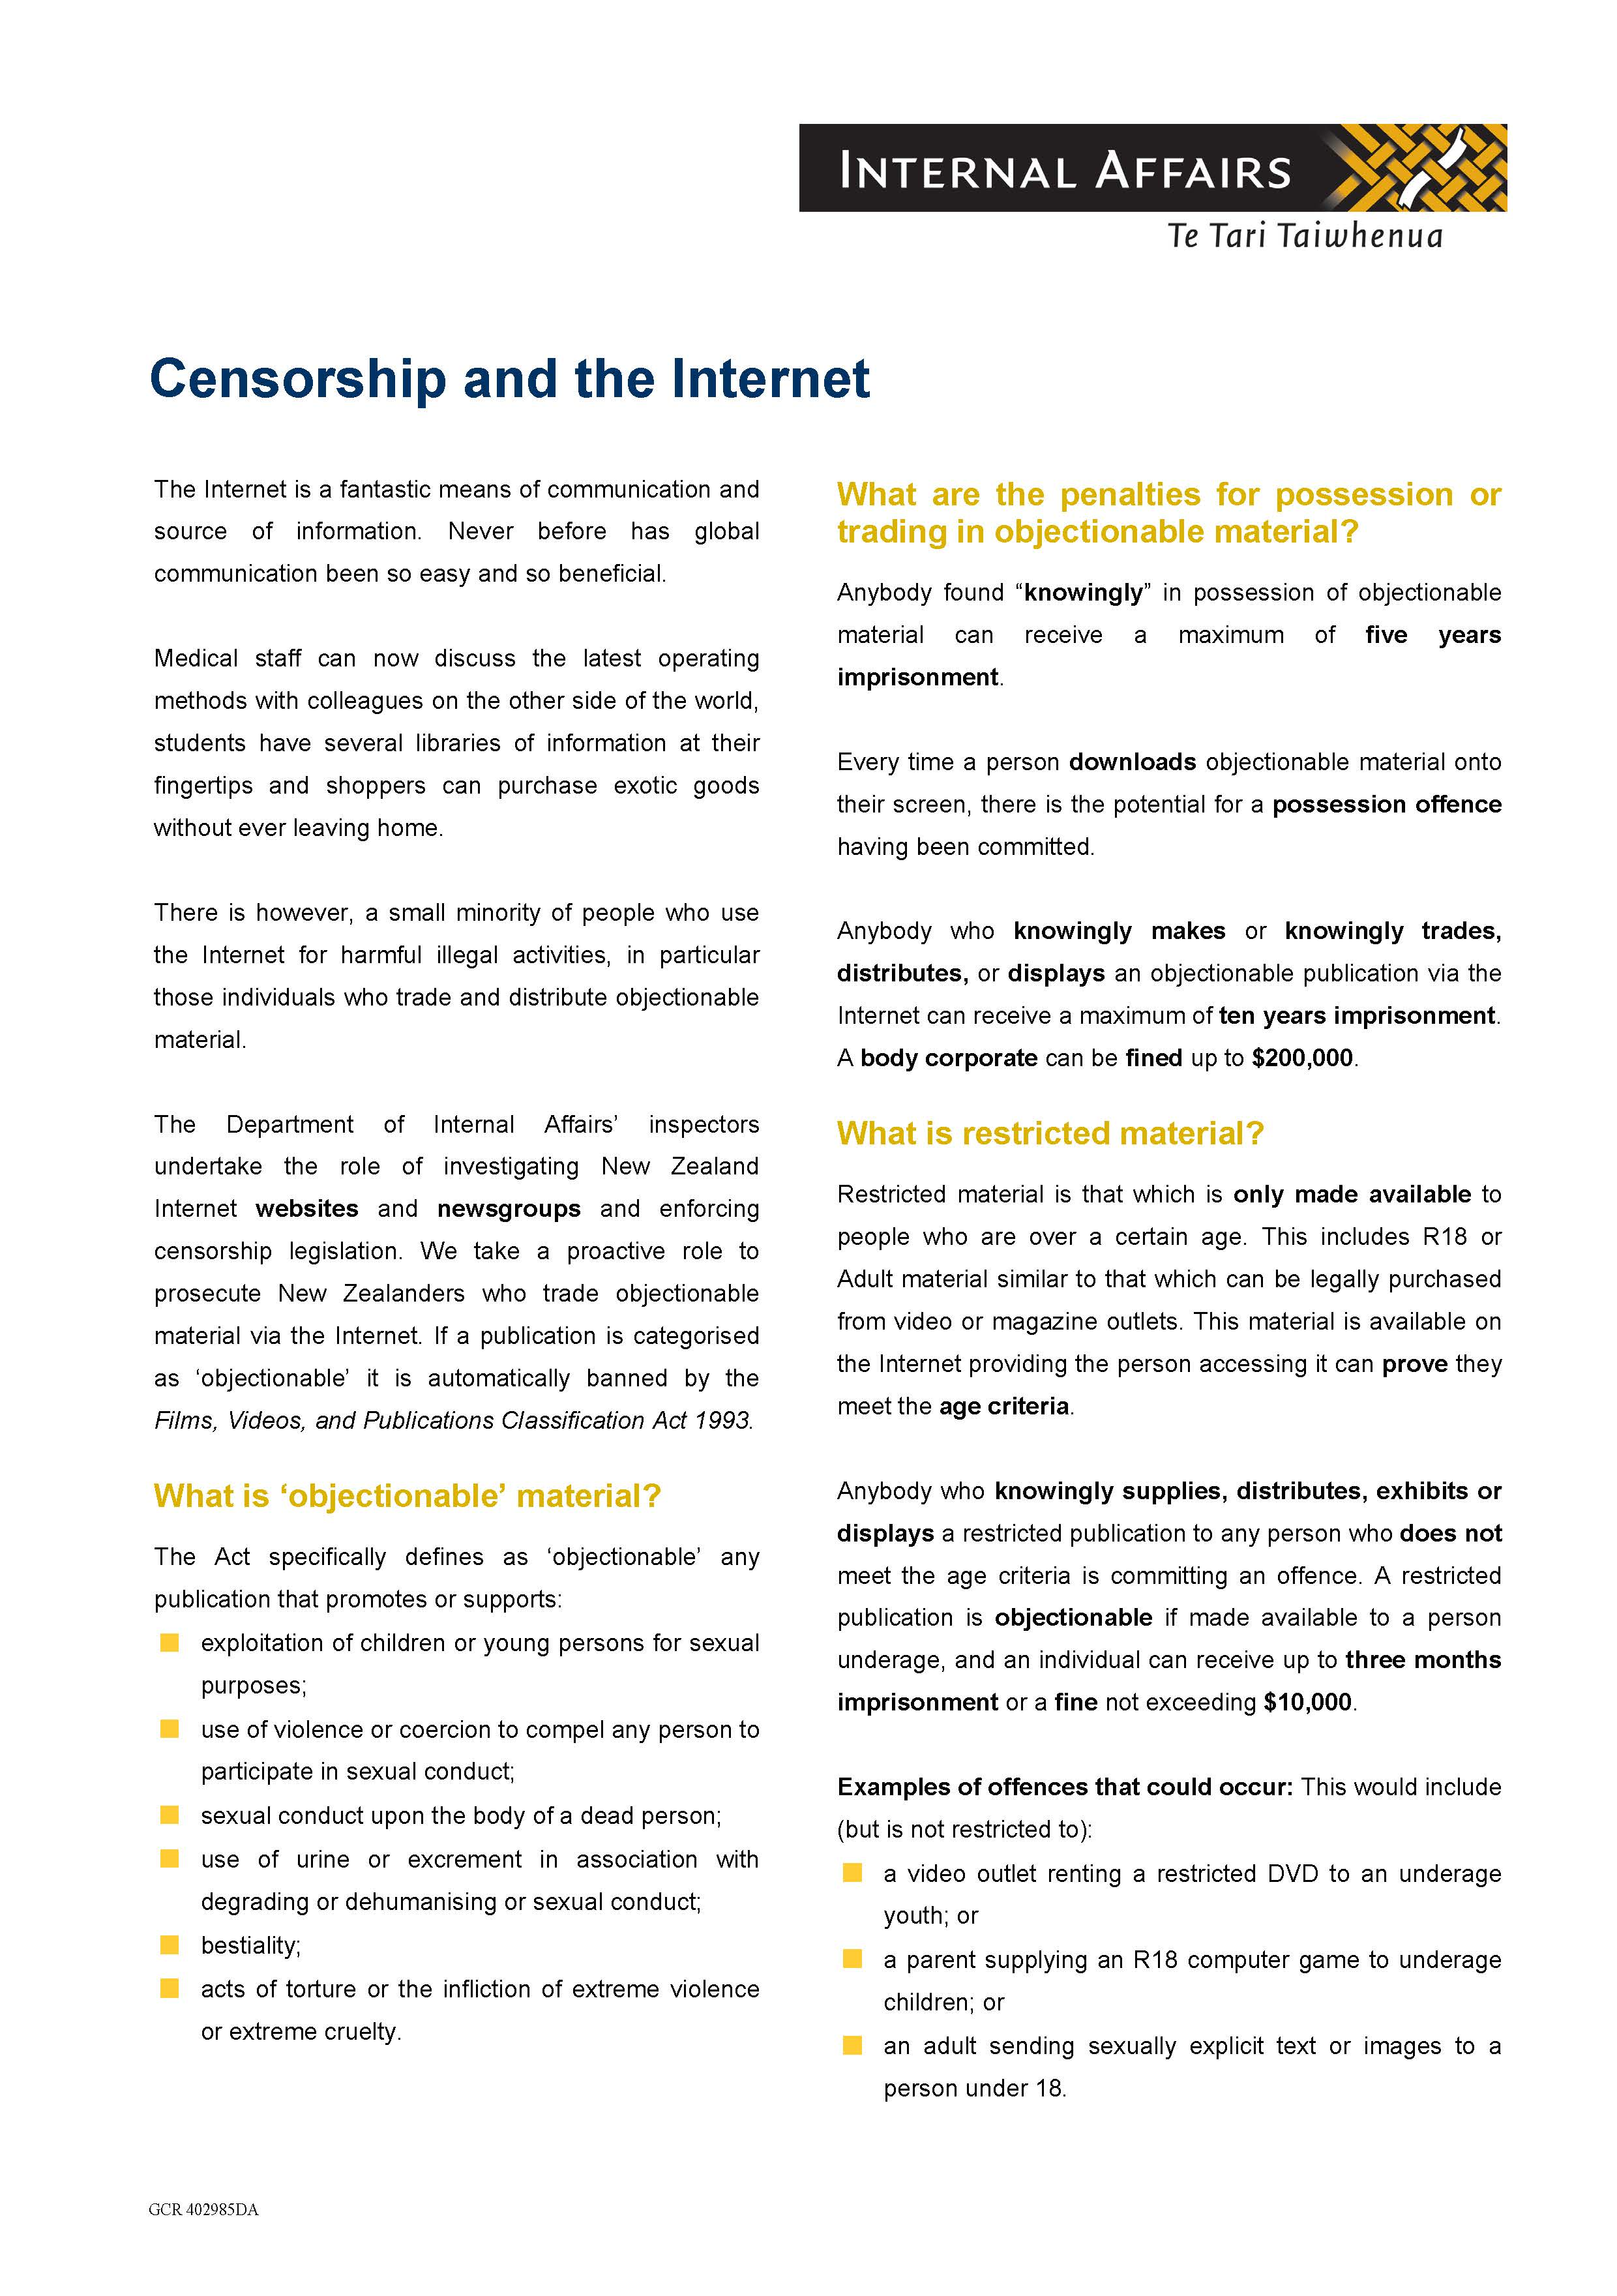 Thumbnail image of the Censorship and the Internet information sheet